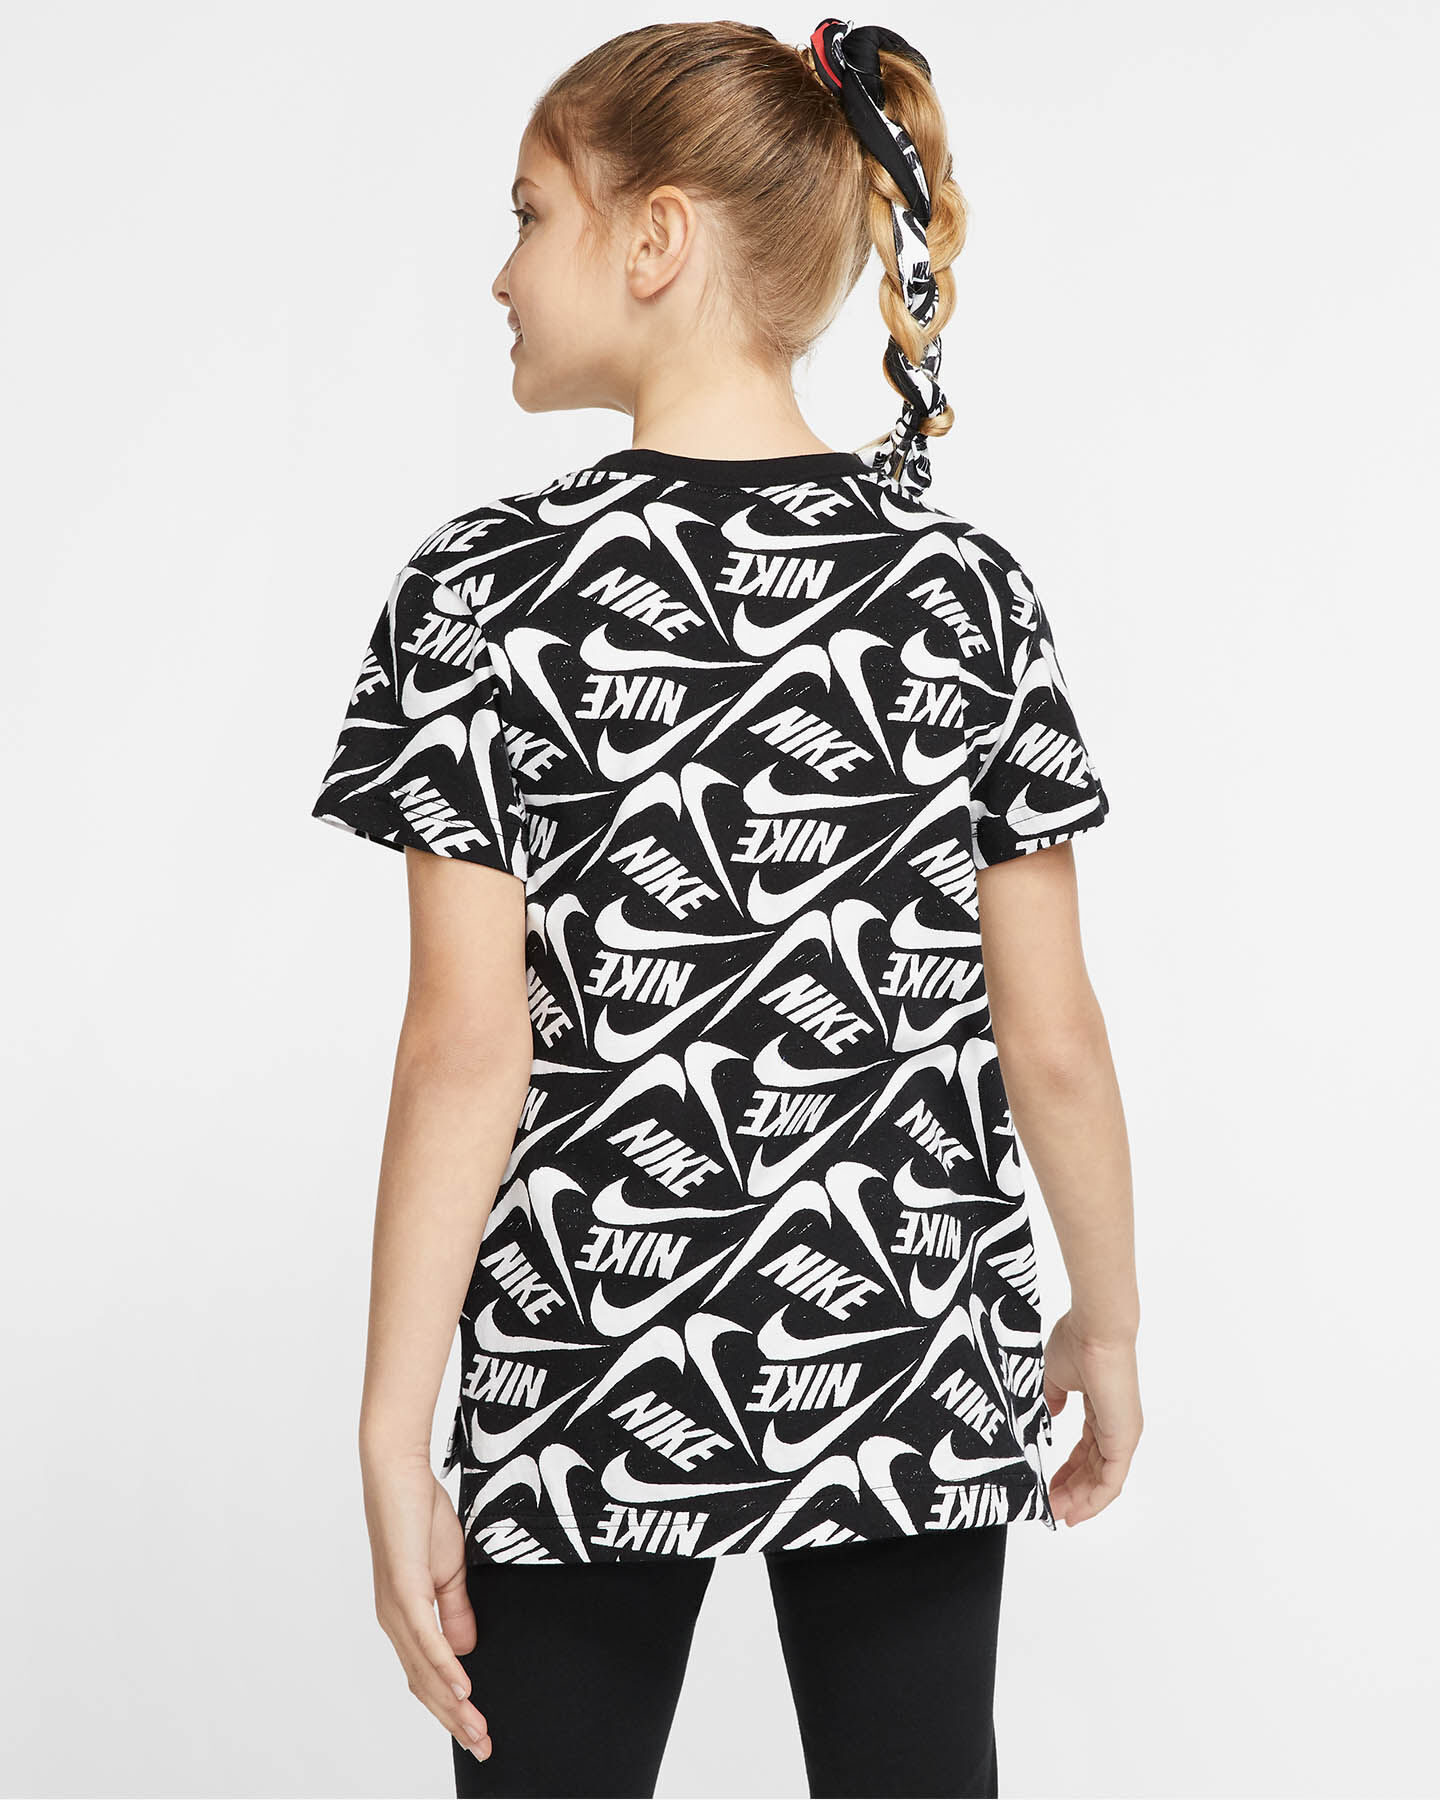 T-Shirt NIKE JRSY JR S5165081 scatto 3